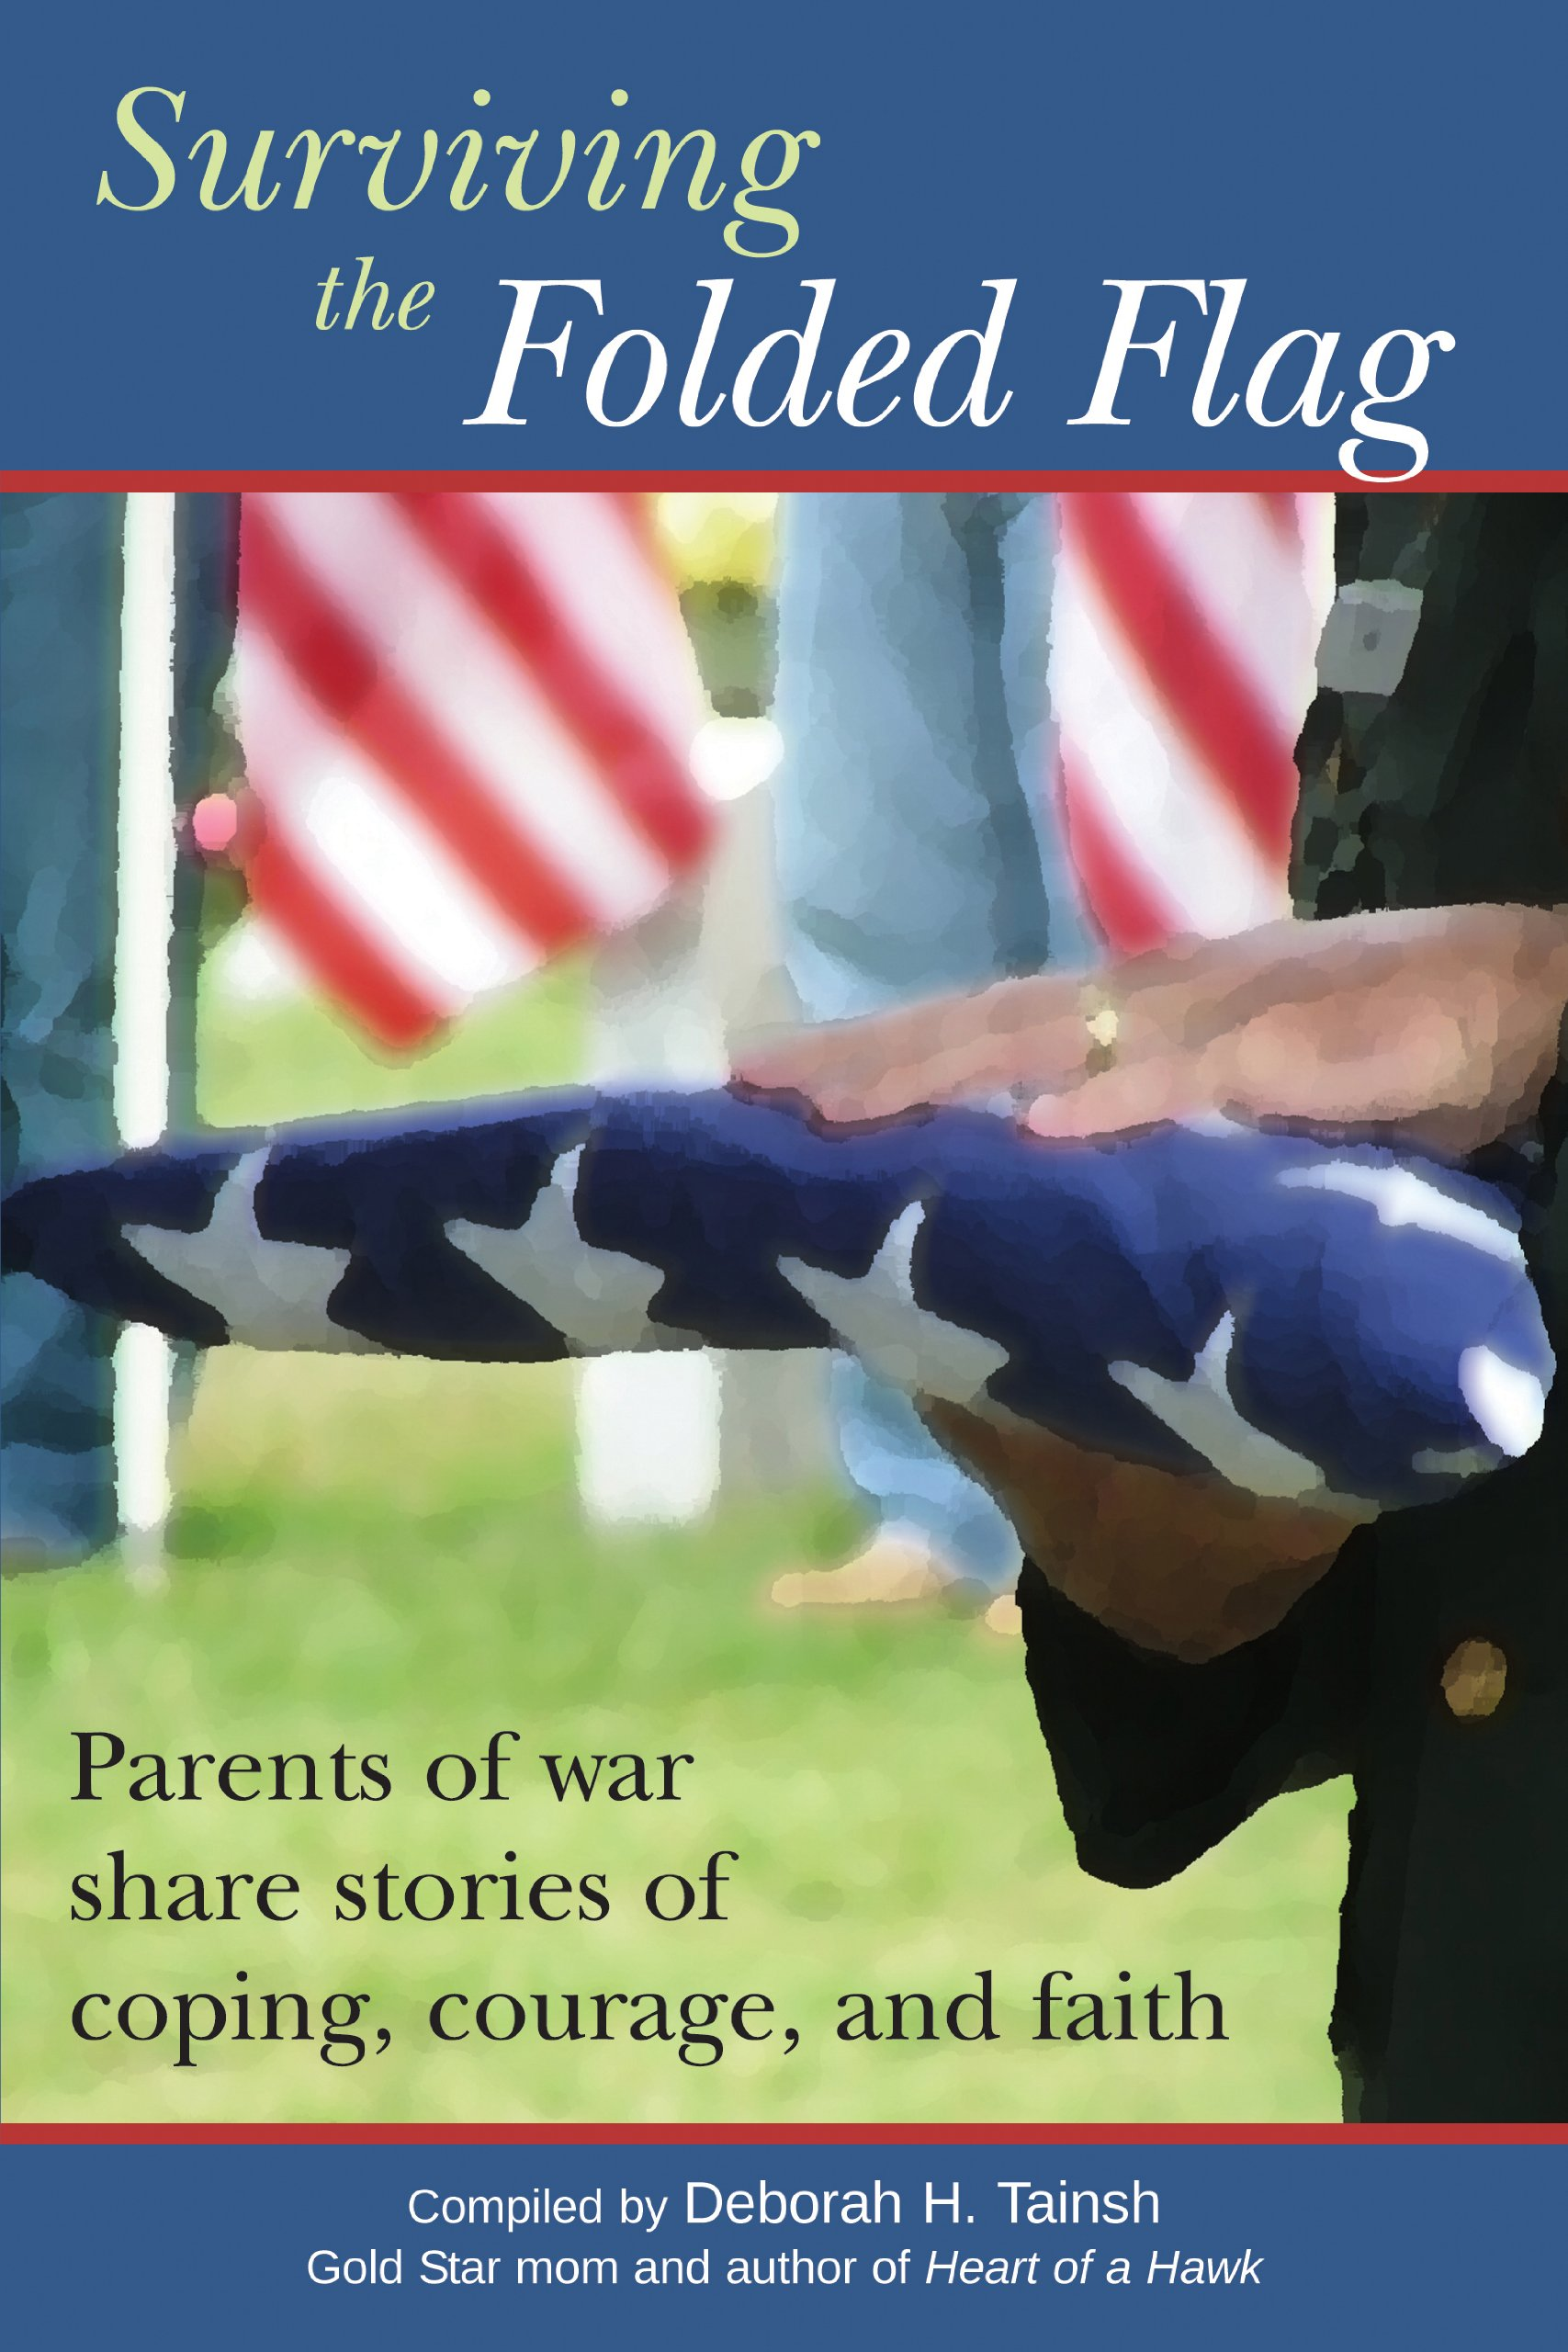 Surviving the Folded Flag: Parents of war share stories of coping, courage, and faith